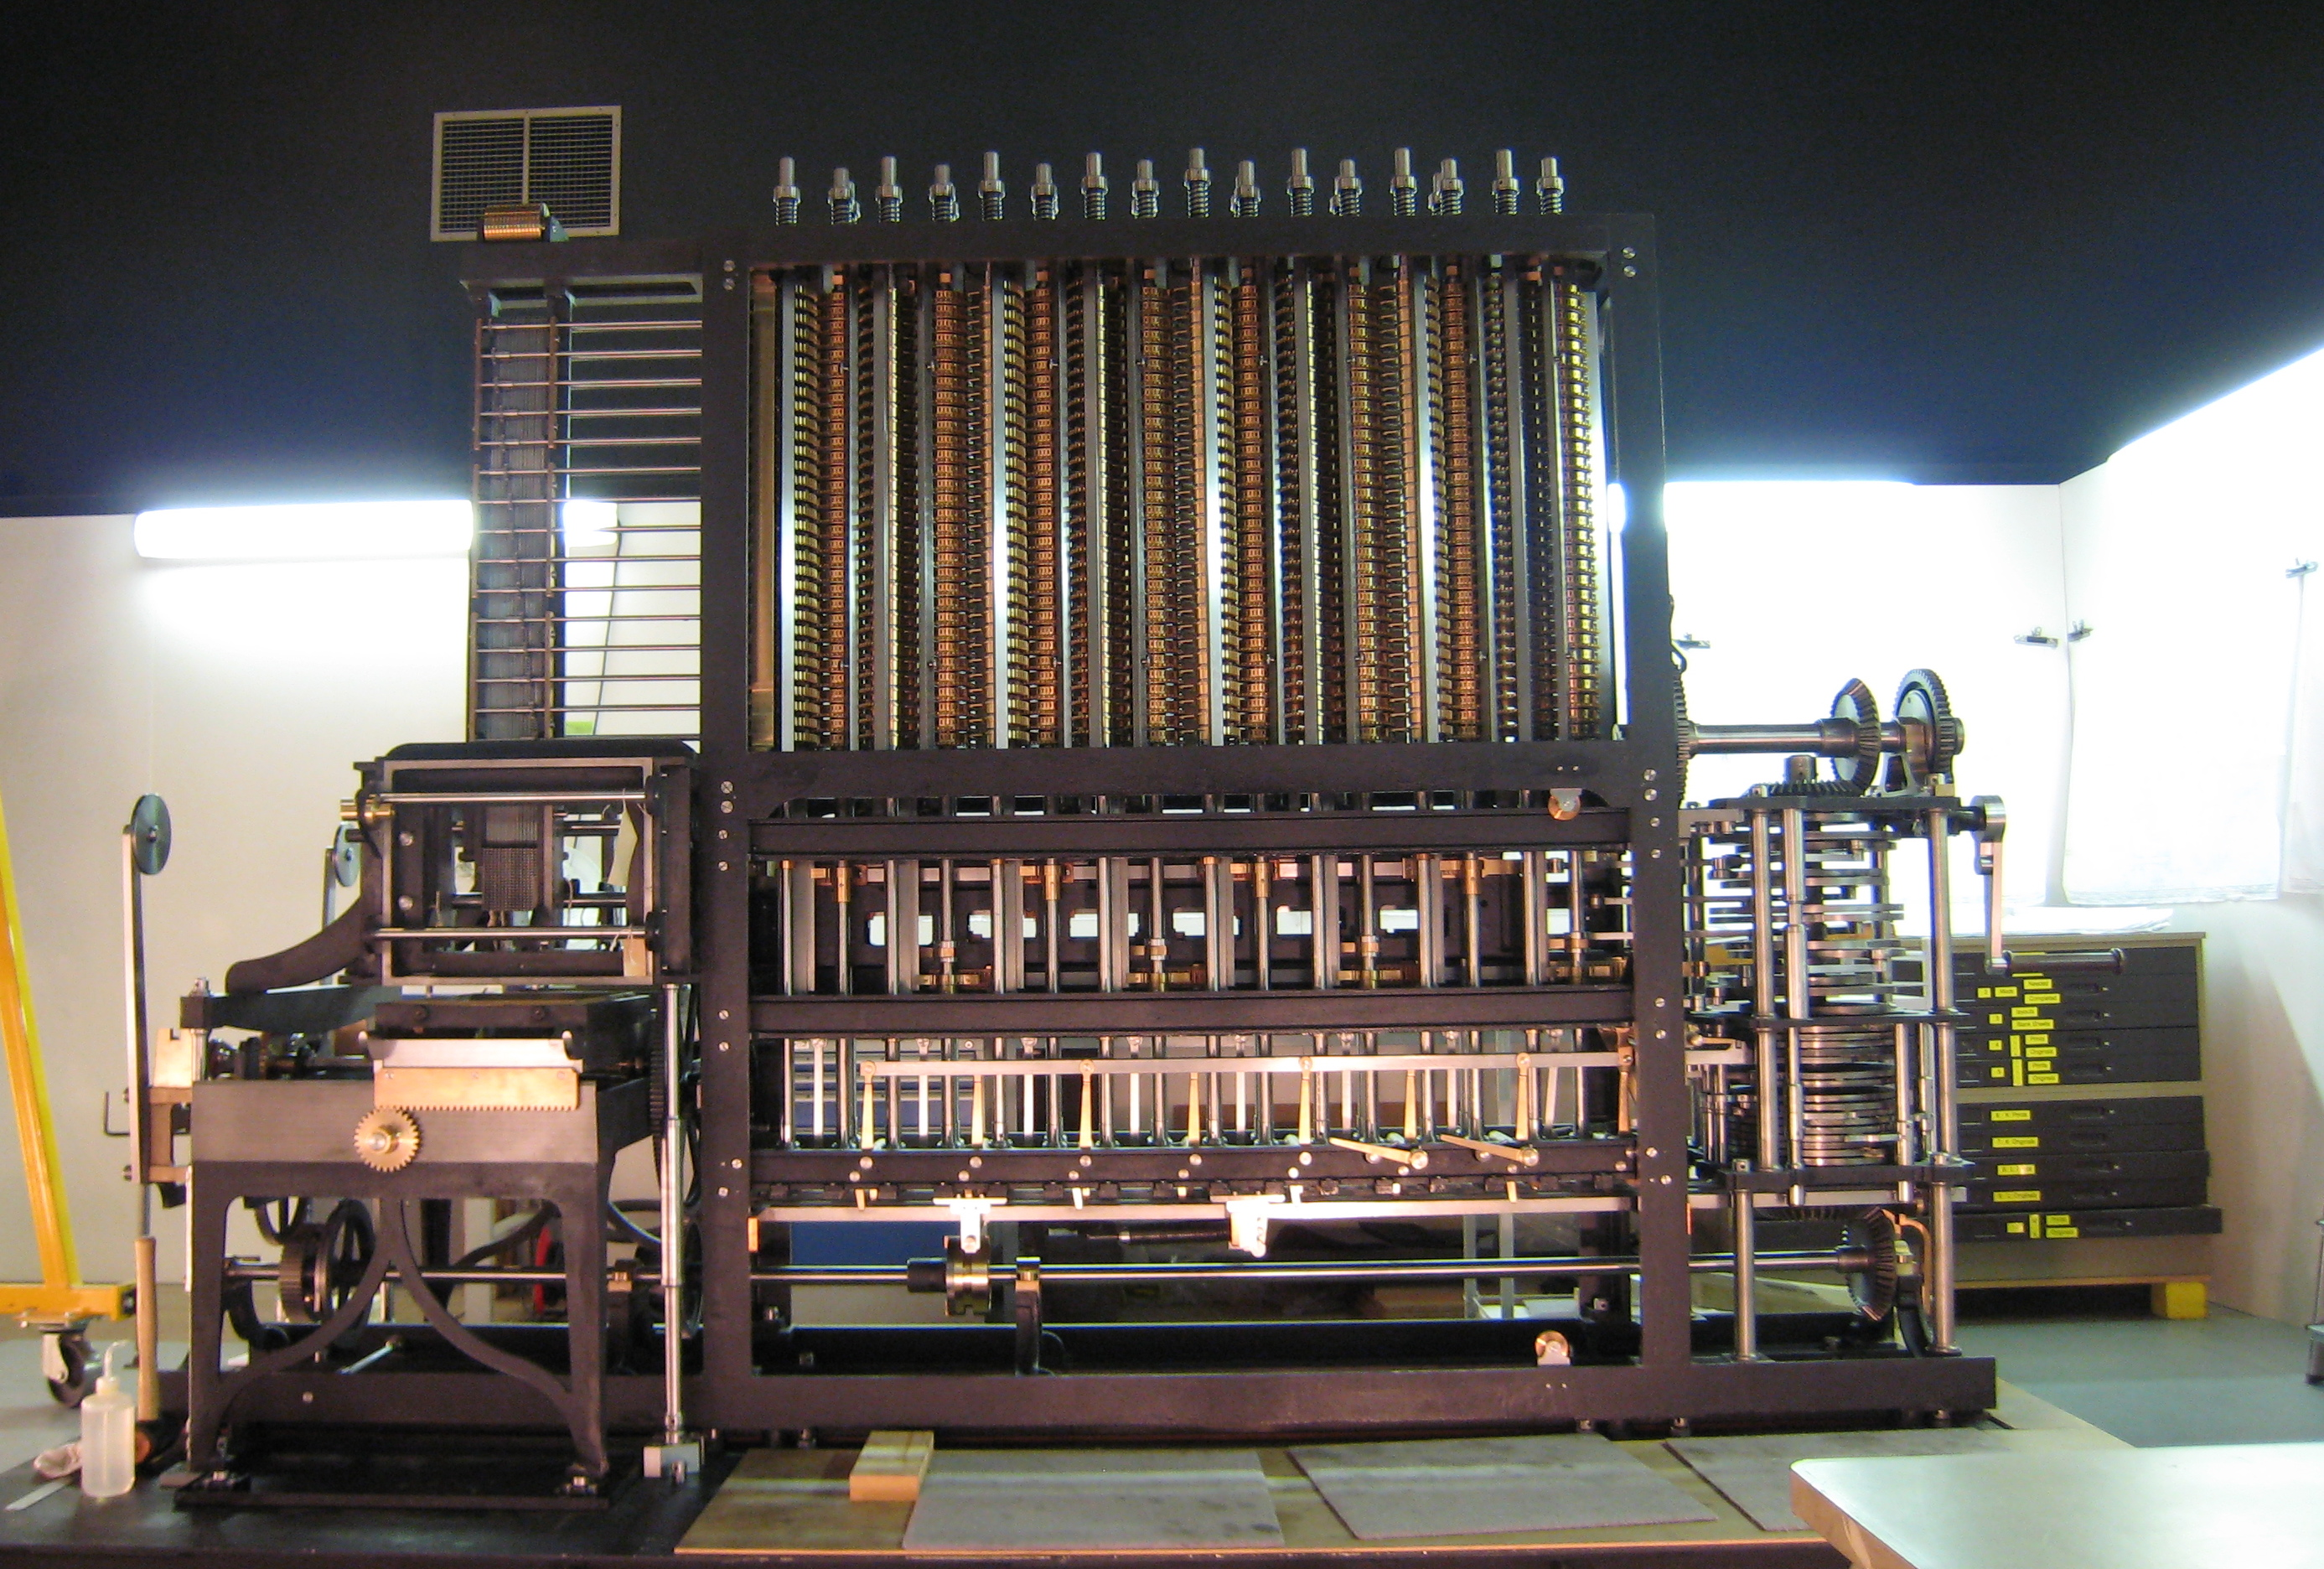 The Babbage Difference Engine in High Resolution ... |The Difference Engine